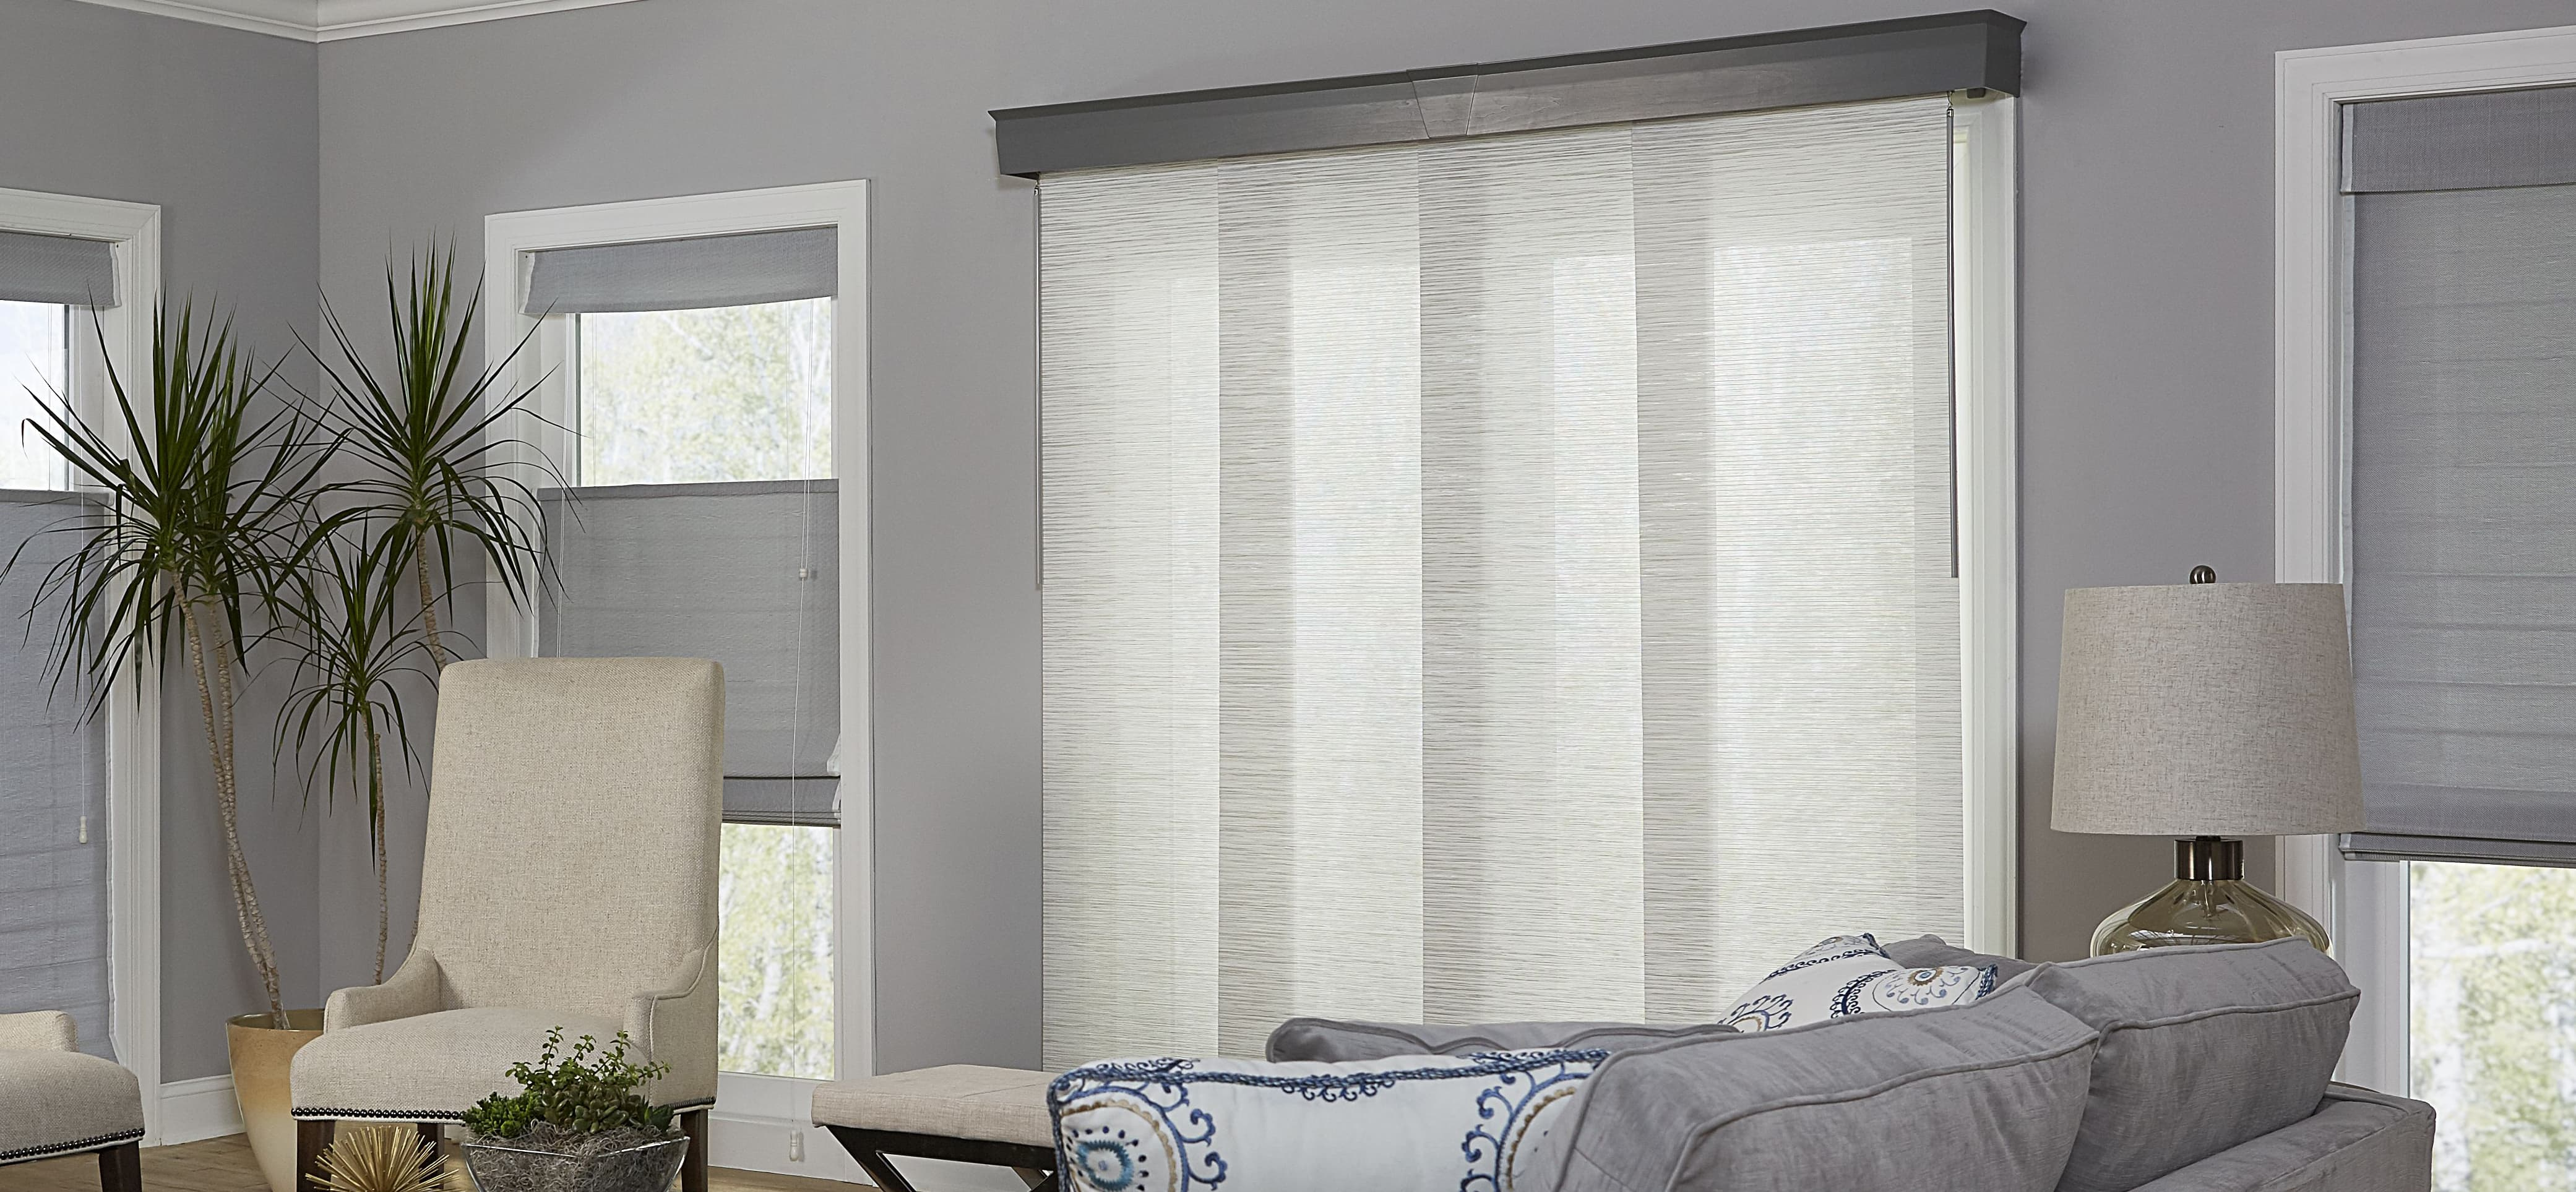 Incroyable If You Need To Block Glare And Harmful UV Rays Coming In Through Your Sliding  Glass Door, Traditional Vertical Blinds Arenu0027t The Only Choice.